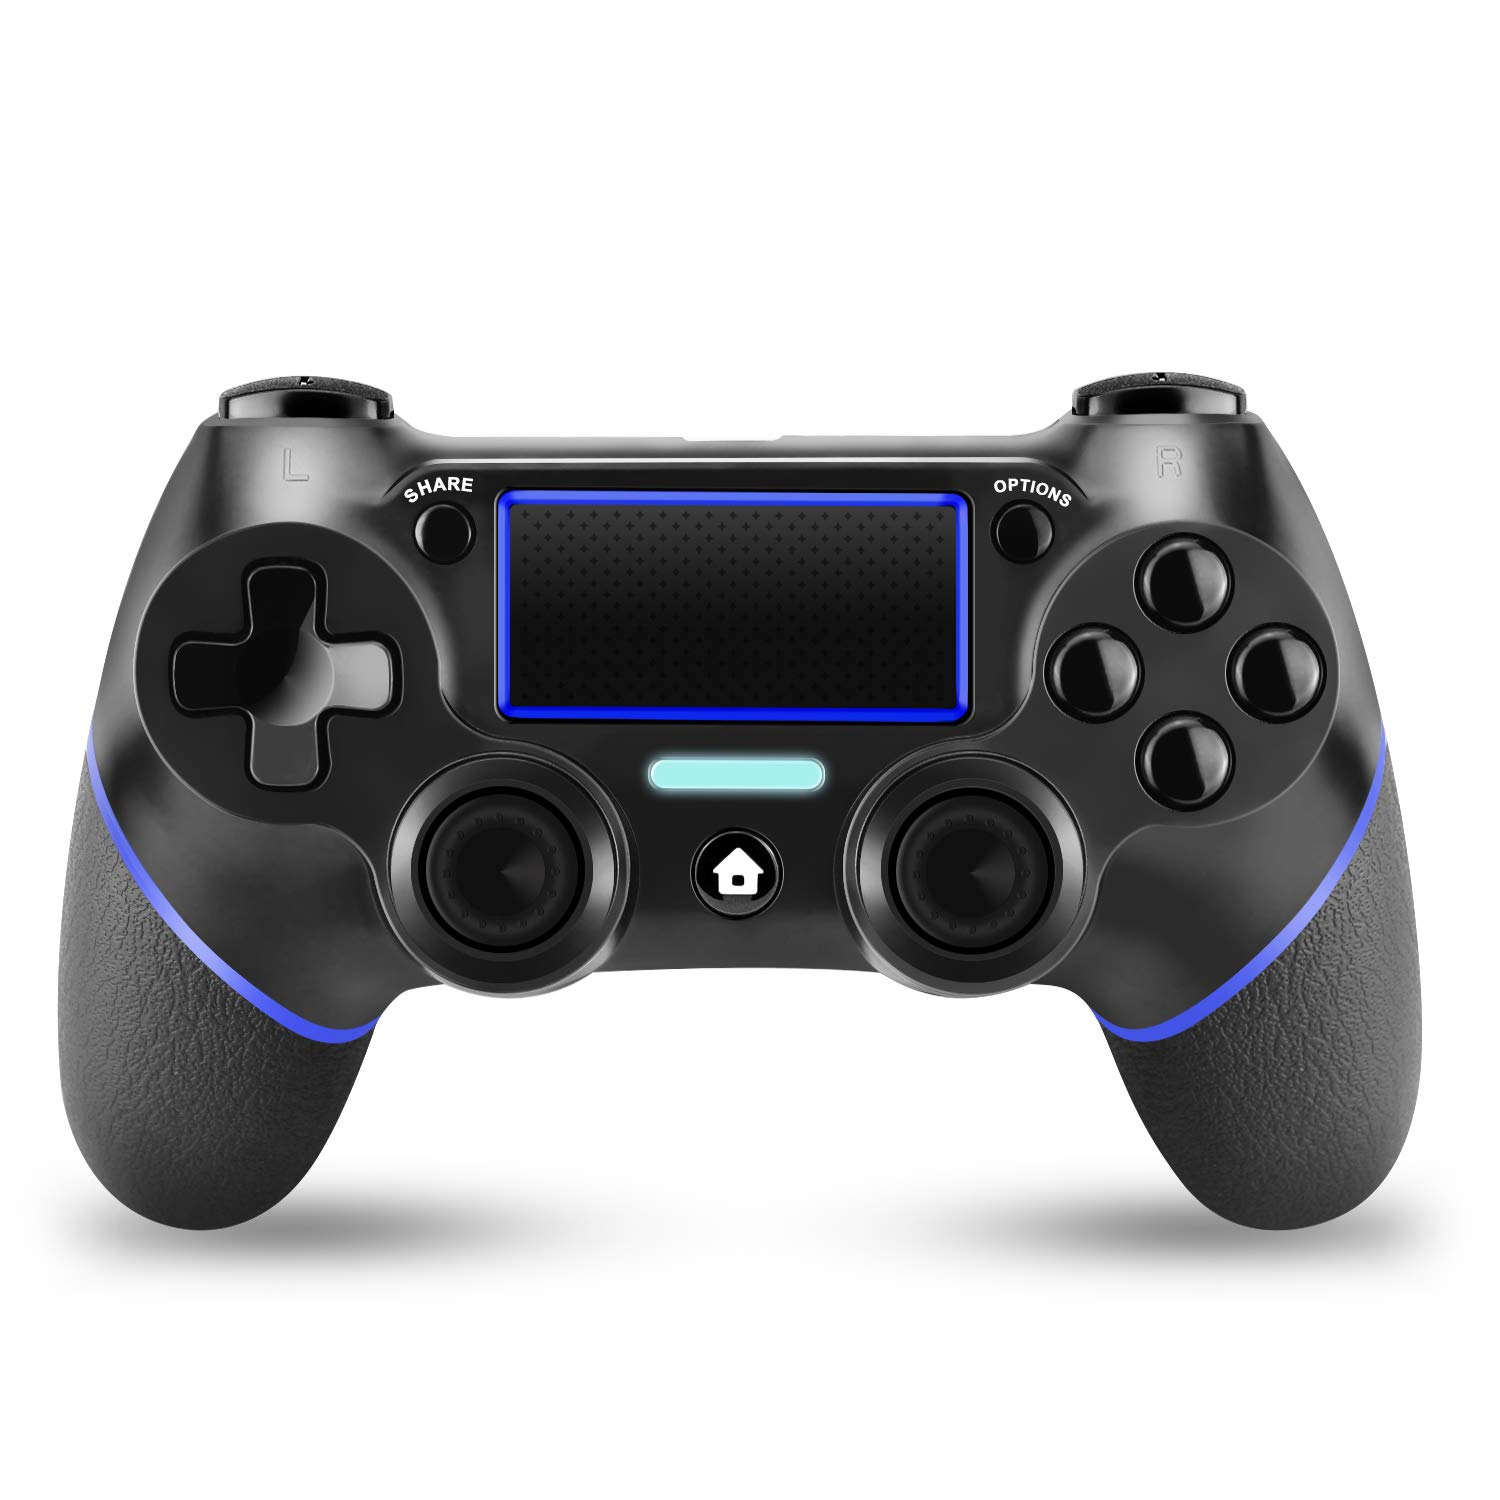 Etpark PS-4 Wireless Challenge the lowest price of Japan ☆ Controller Gamepad Professional Touch Credence